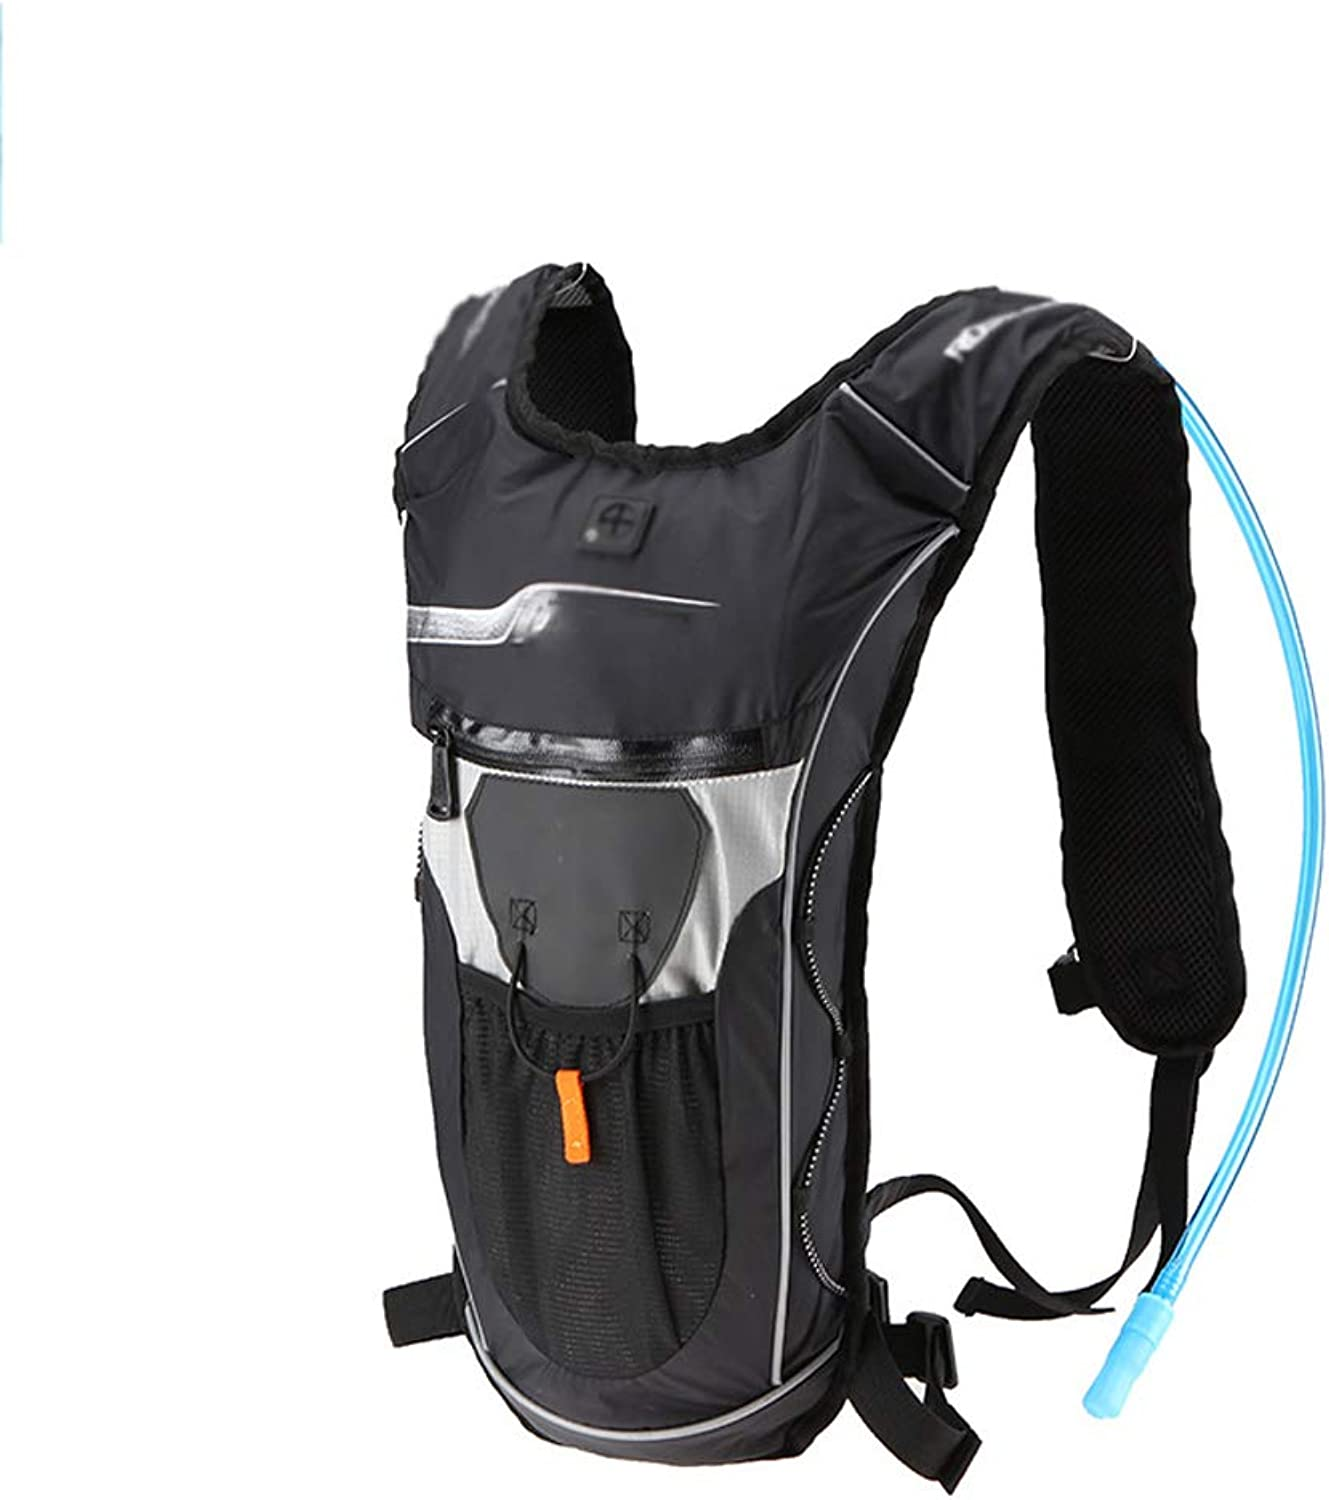 Bicycle Bag Bicycle Water Bag Backpack Outdoor Sports Riding Backpack Black